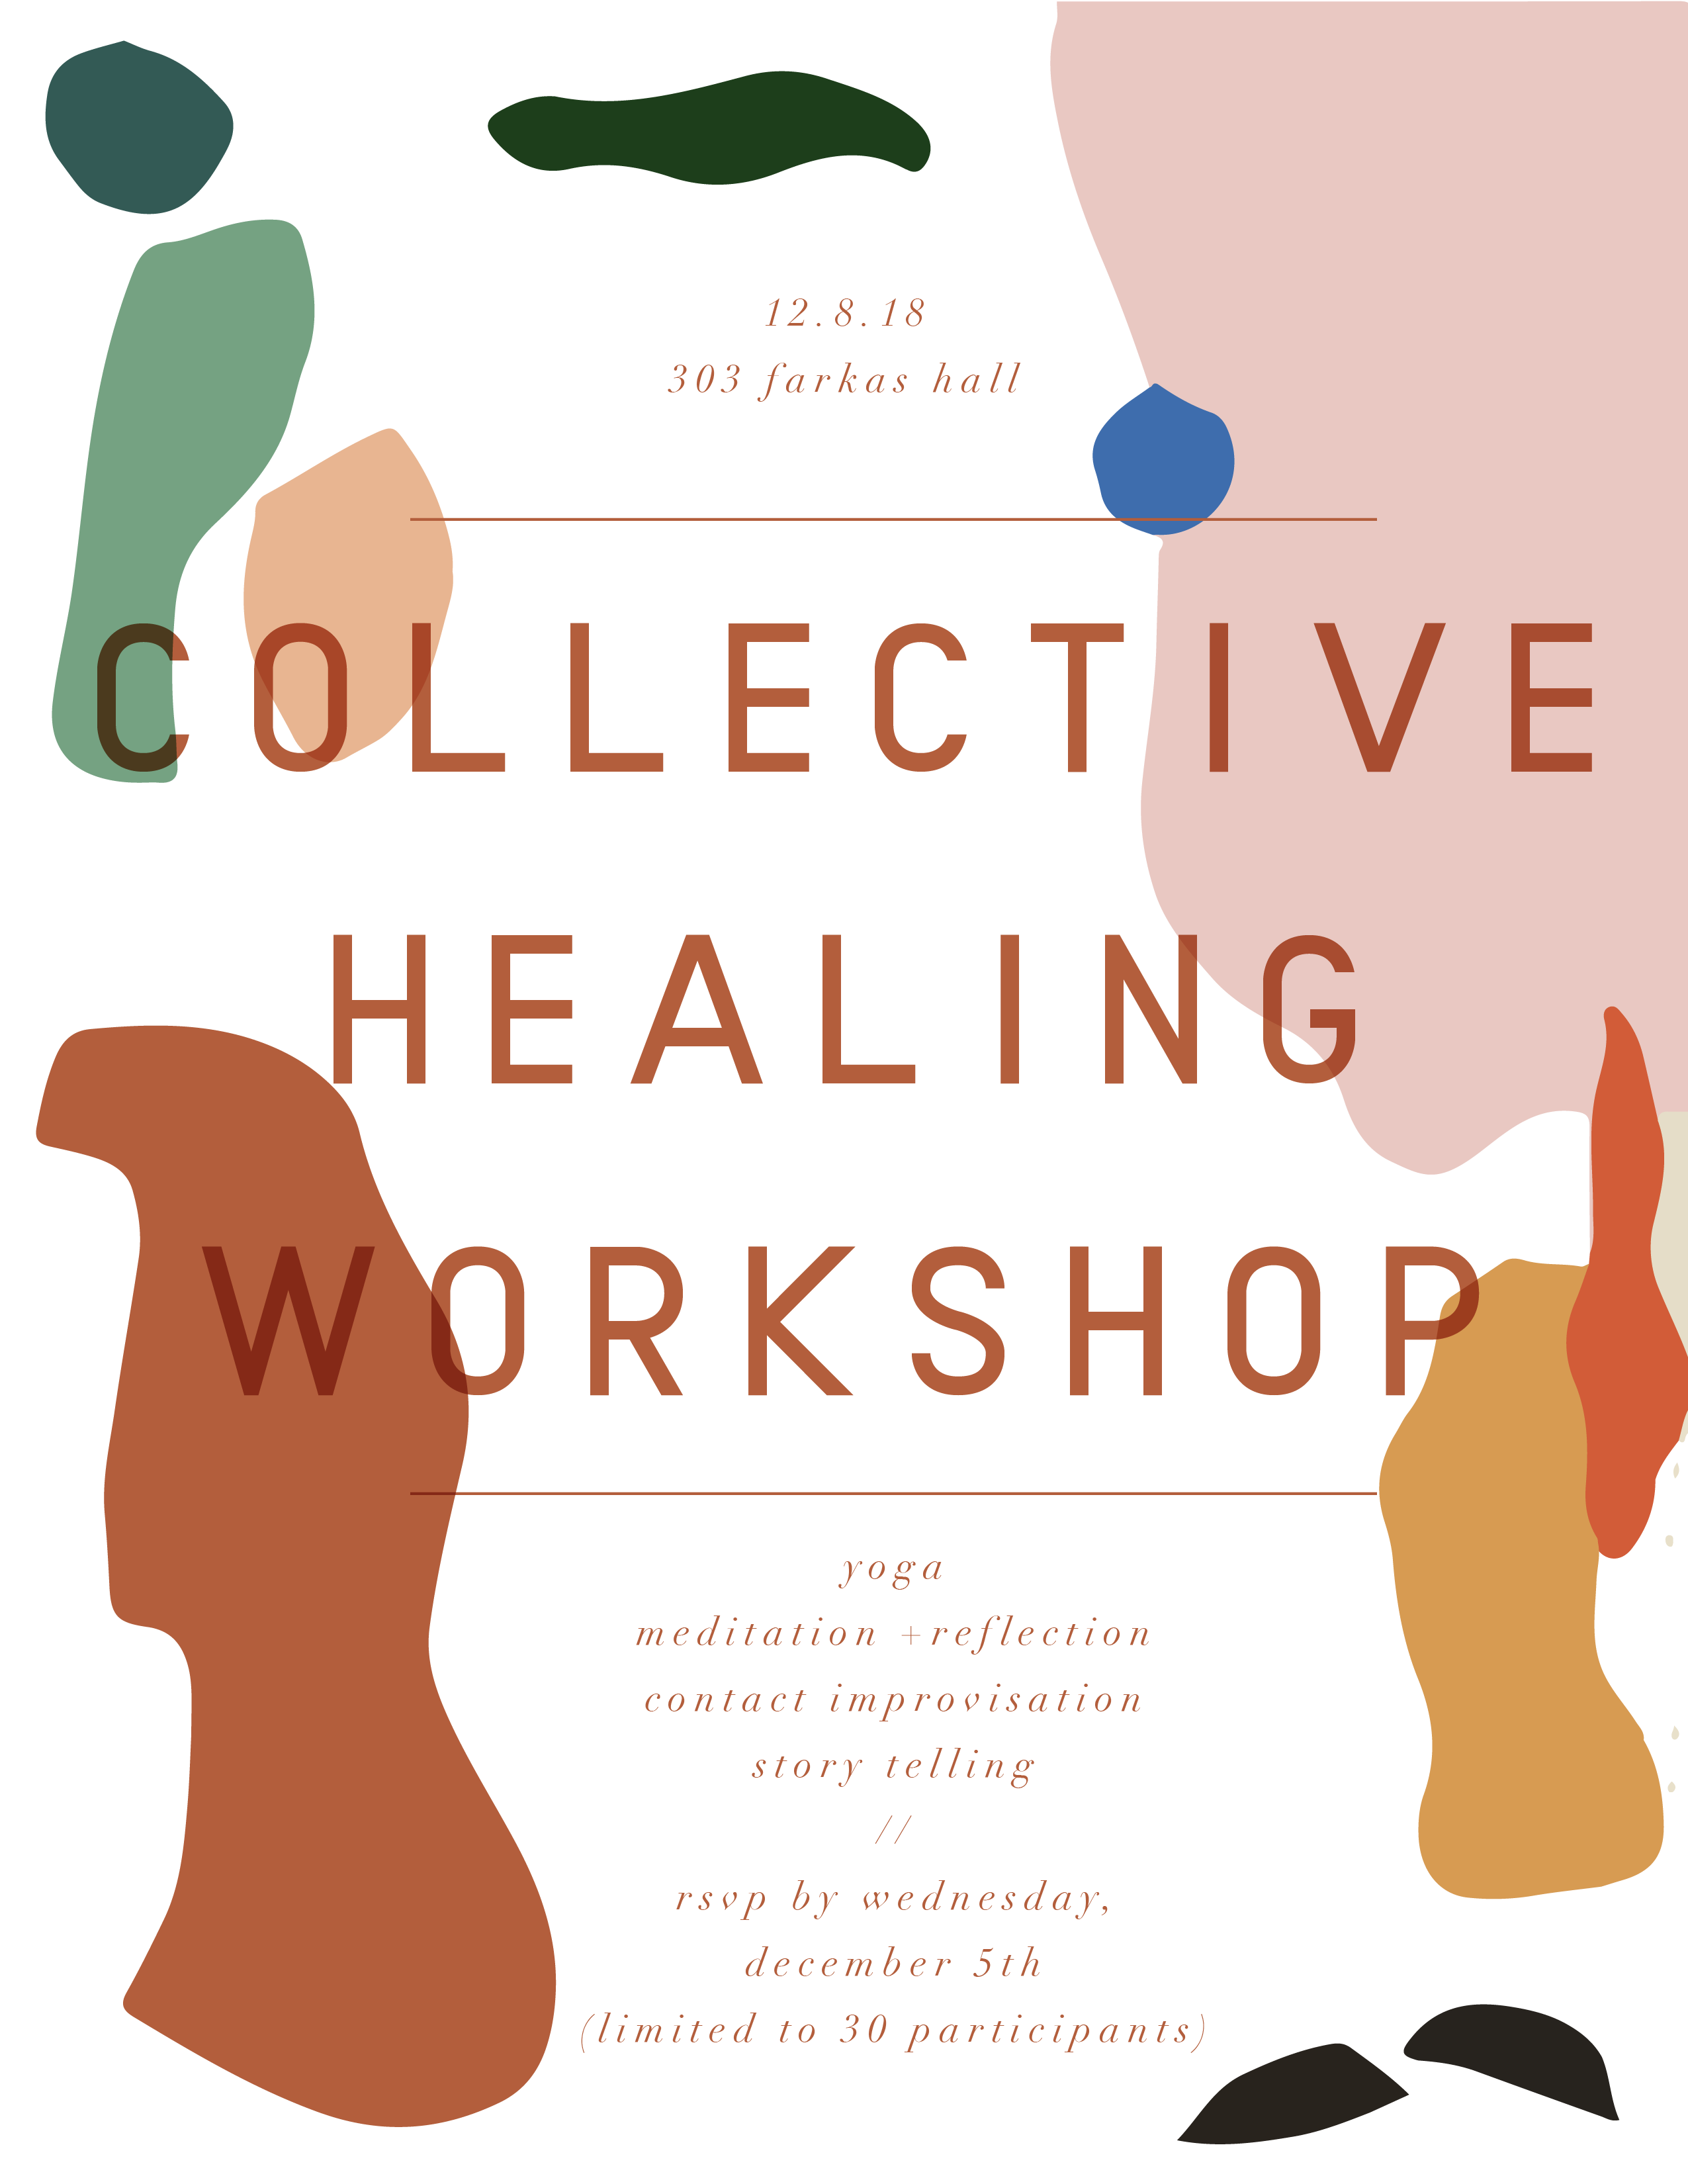 SPACES OF SOLIDARITY Collective Healing